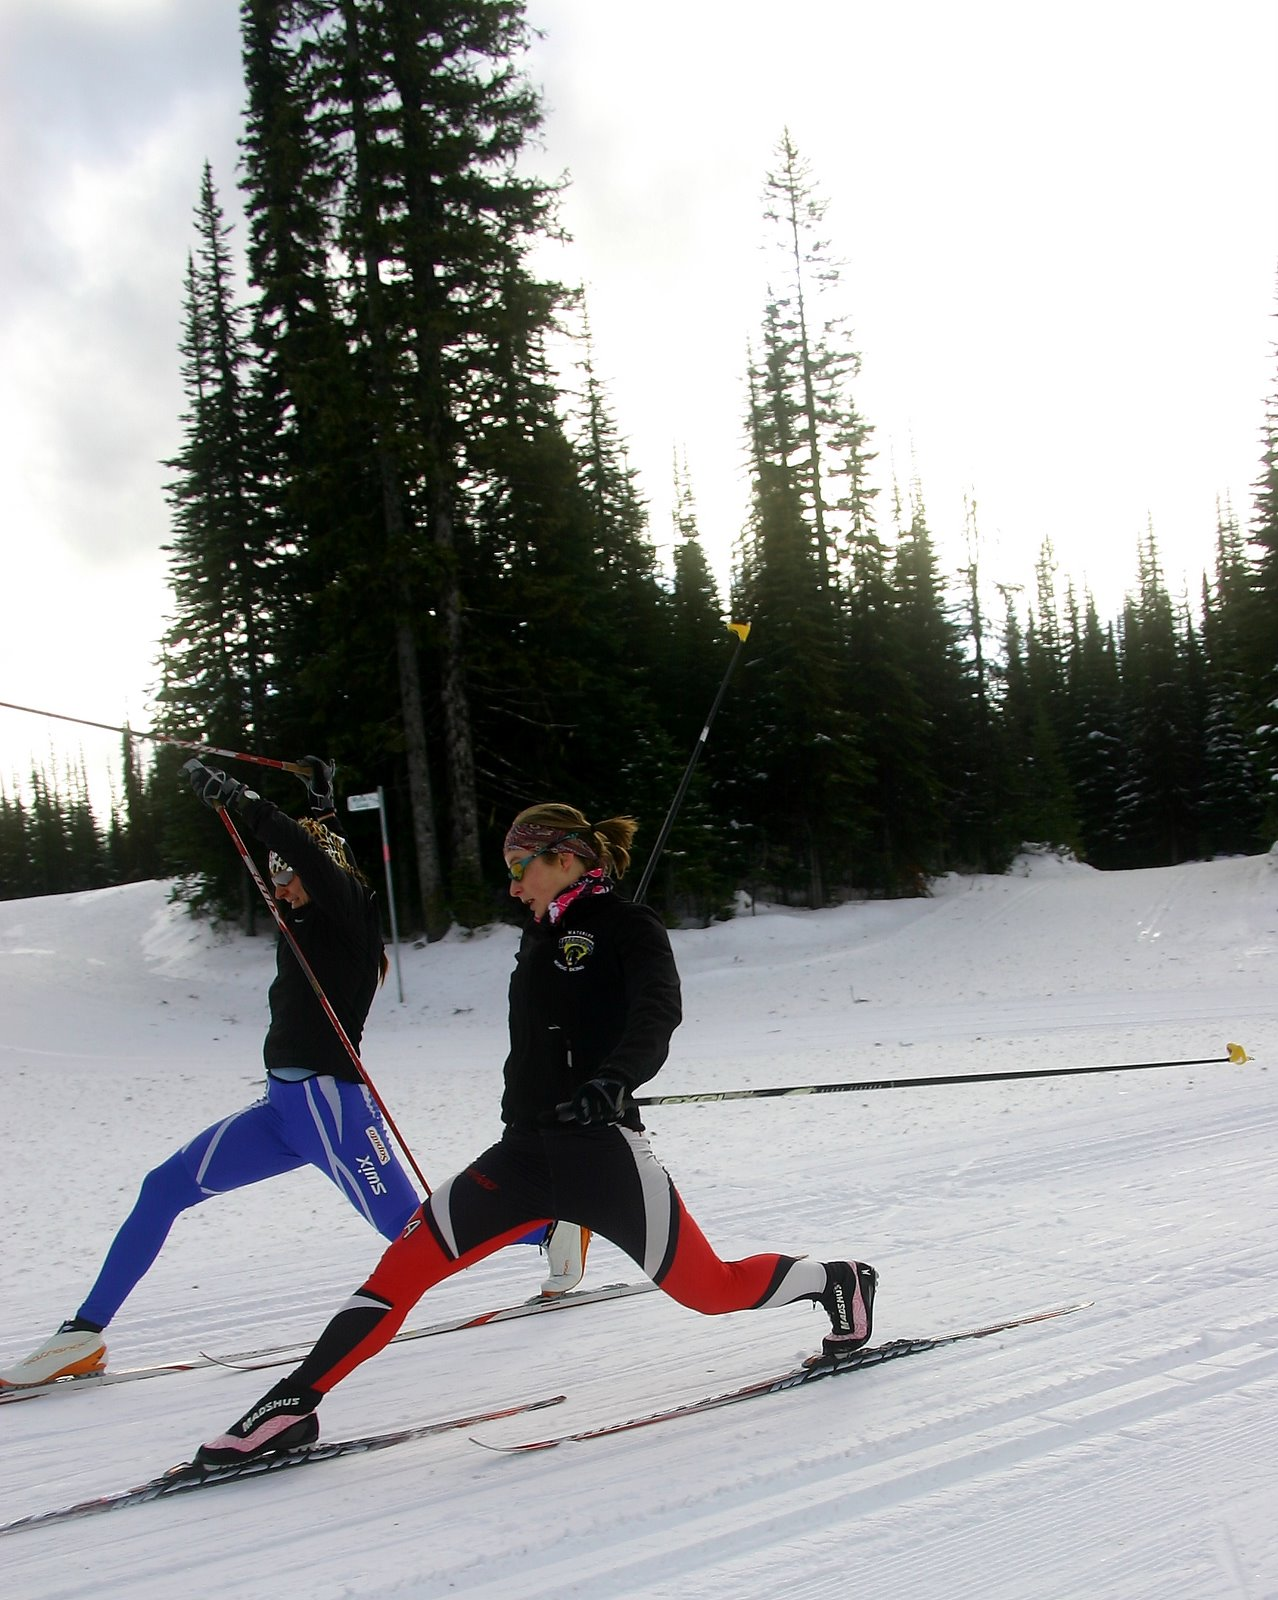 Some sprints in Silverstar